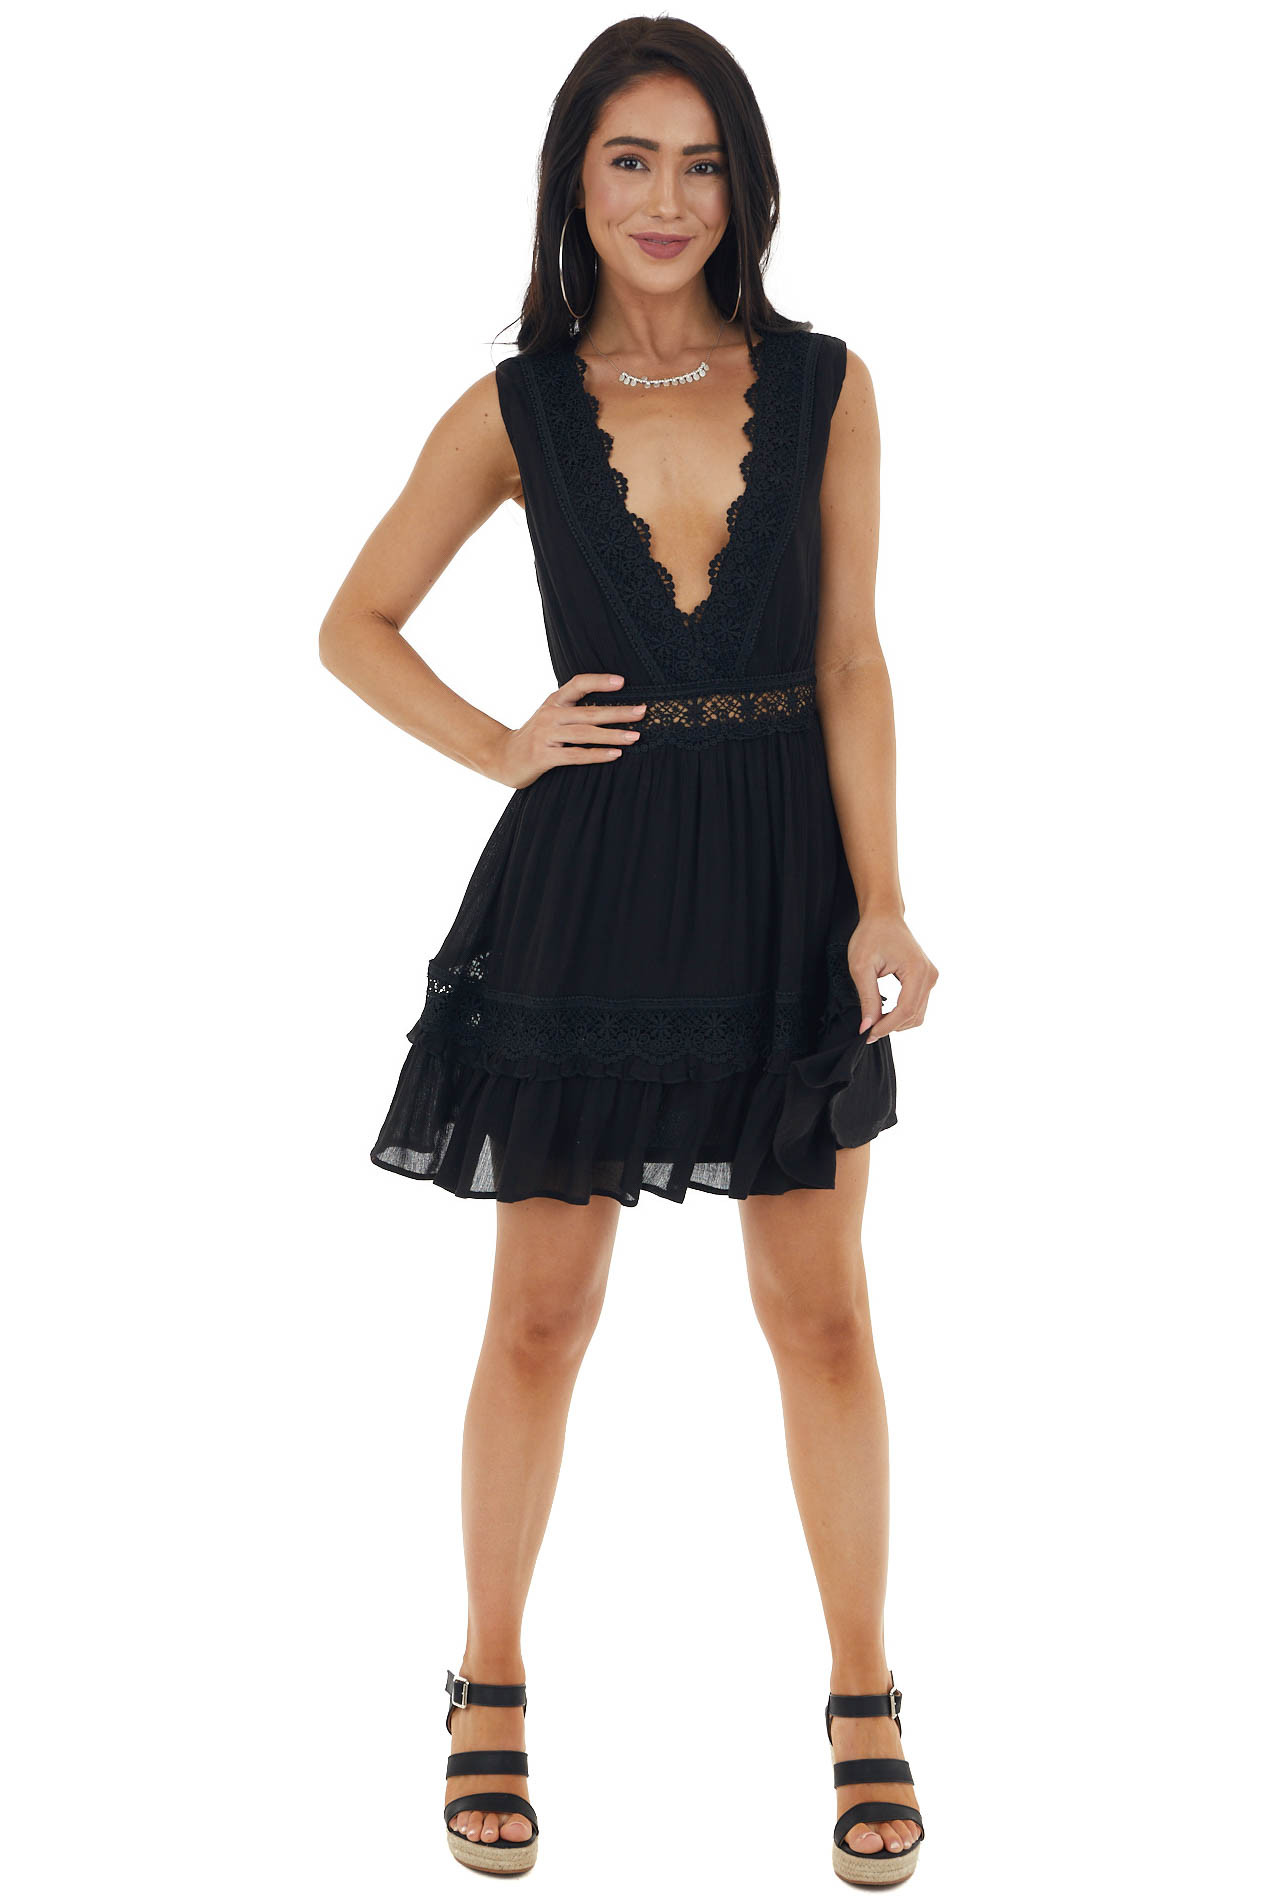 Black Sleeveless Plunging Neck Dress with Crochet Detail